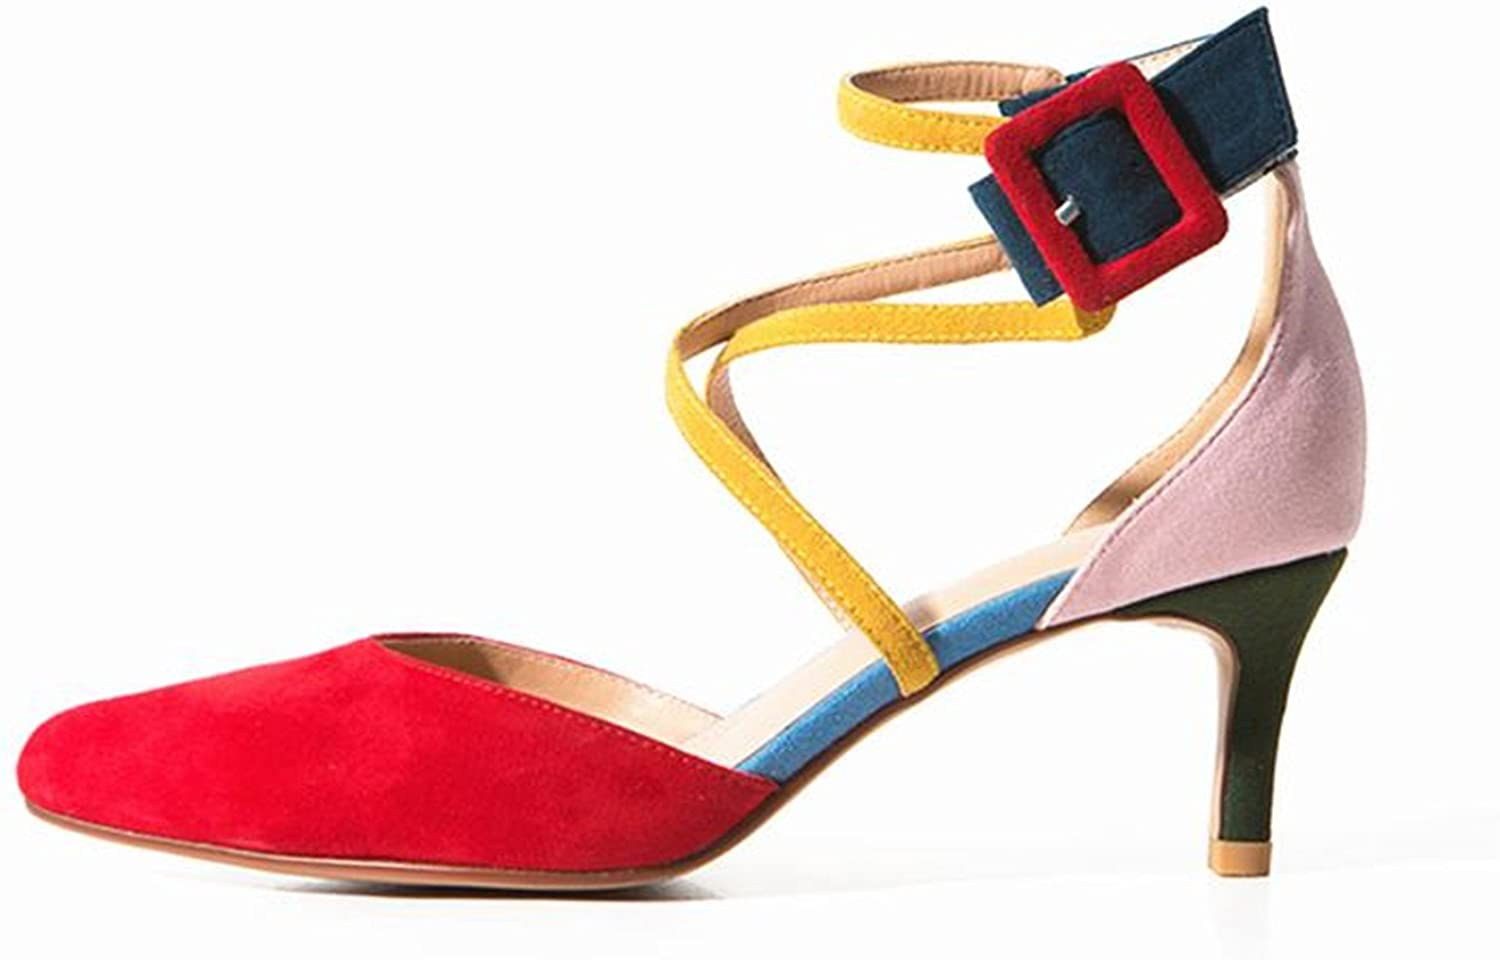 Mofgr Women Pointed Toe High Heel Mixed colors Ankle Strap Buckle Modern Pumps